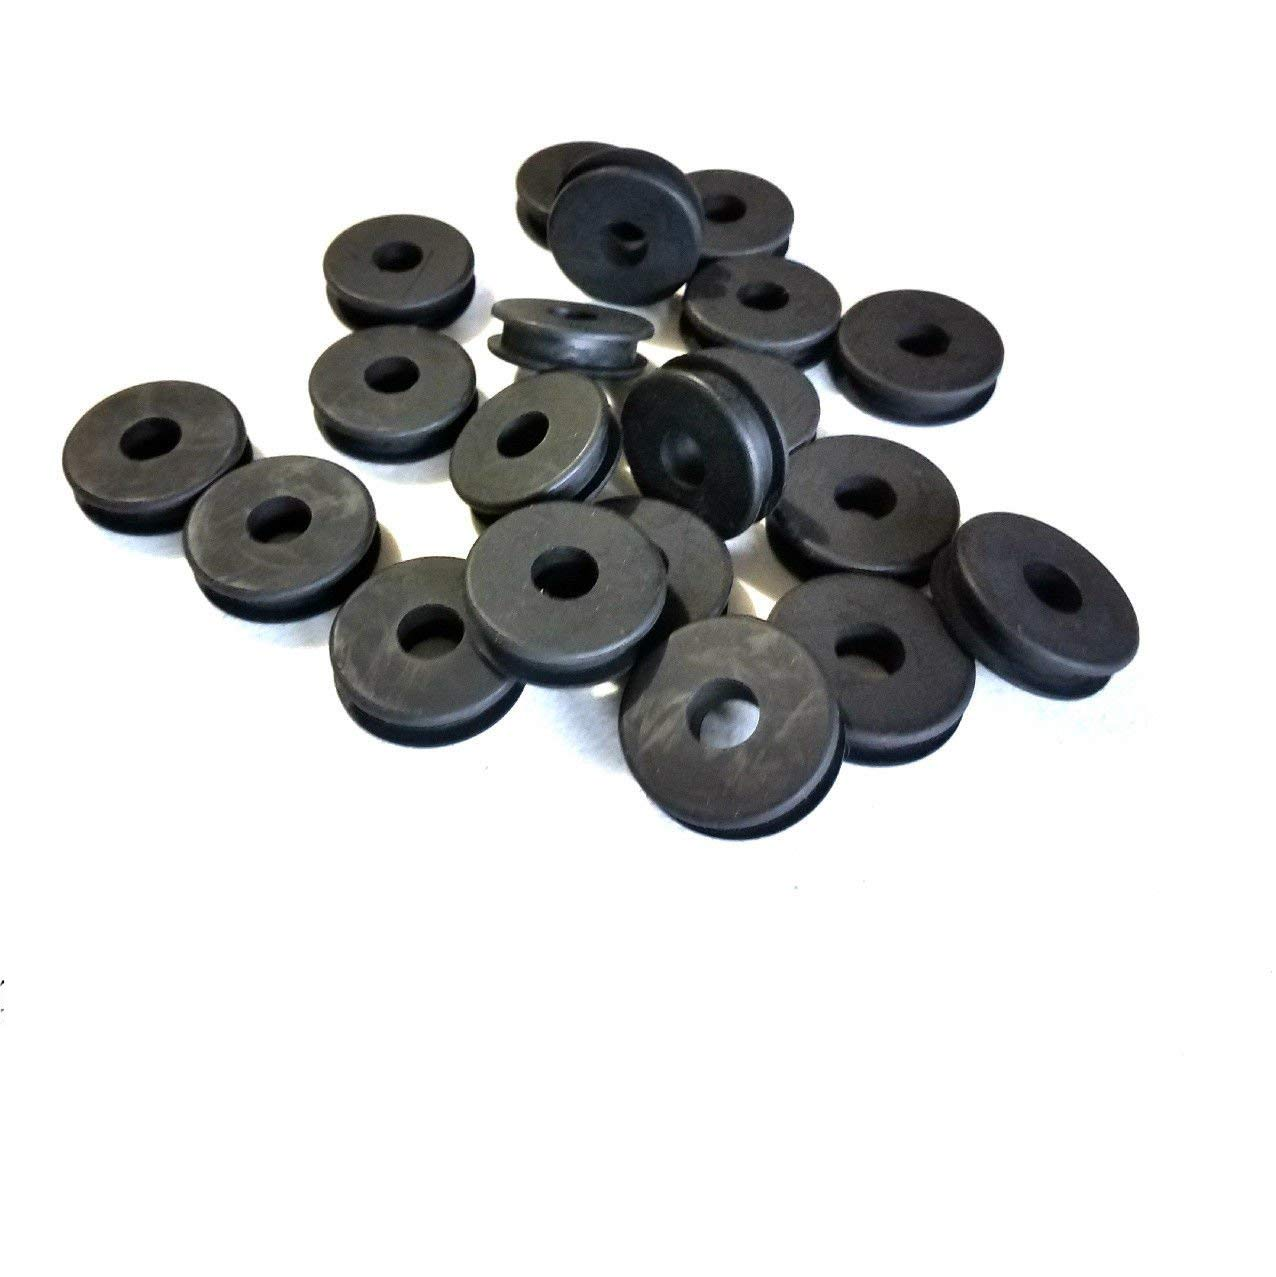 Lot of 20 latest Rubber Popularity Grommets 1 2